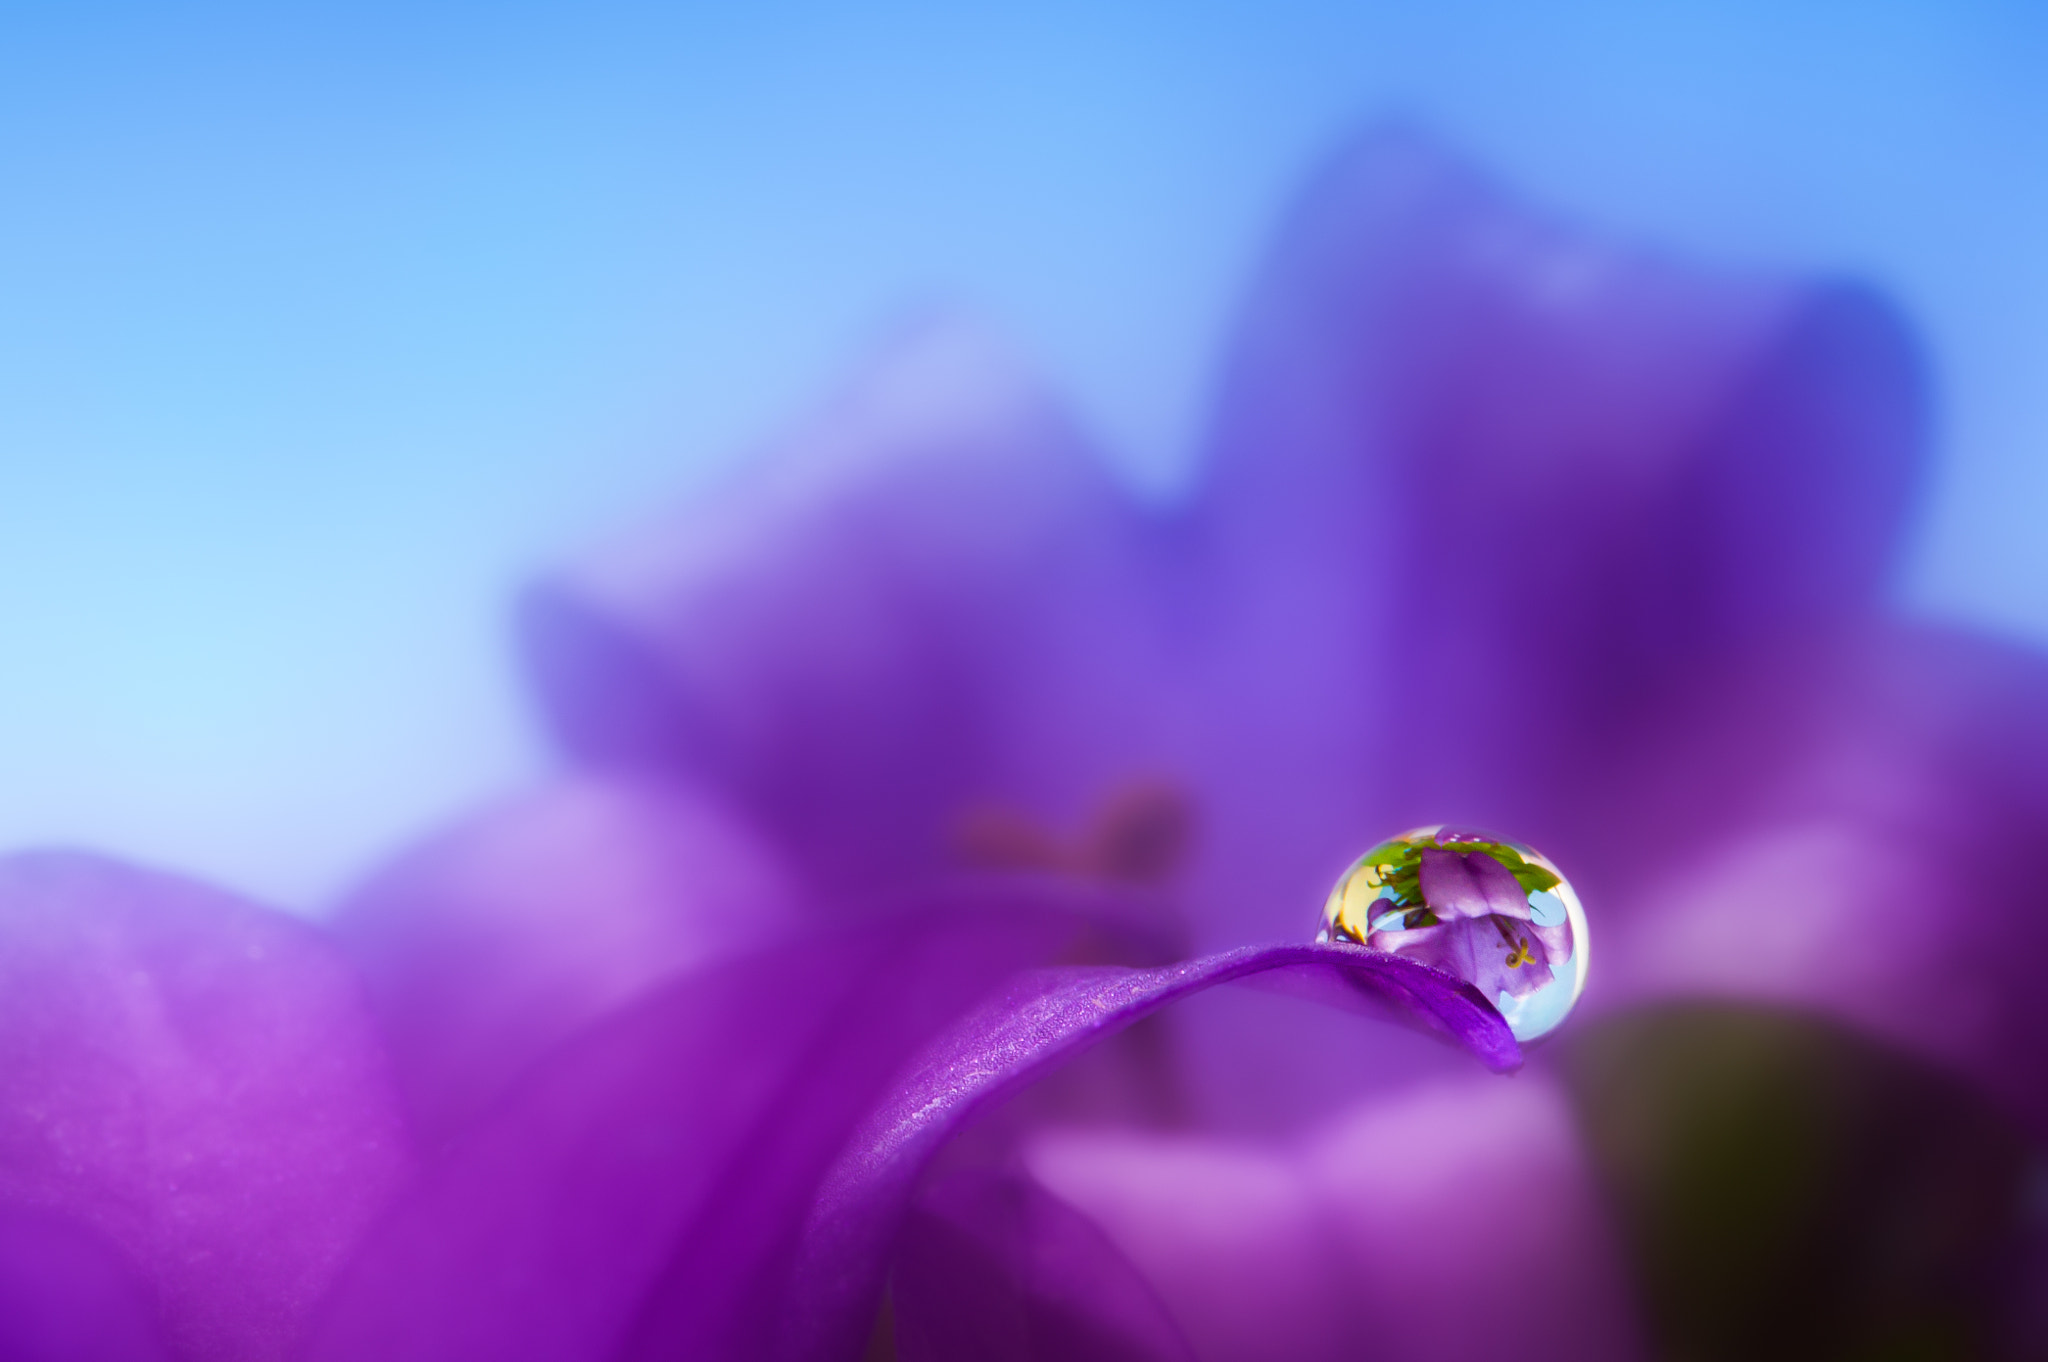 Photograph Flower in drop by Miki Asai on 500px